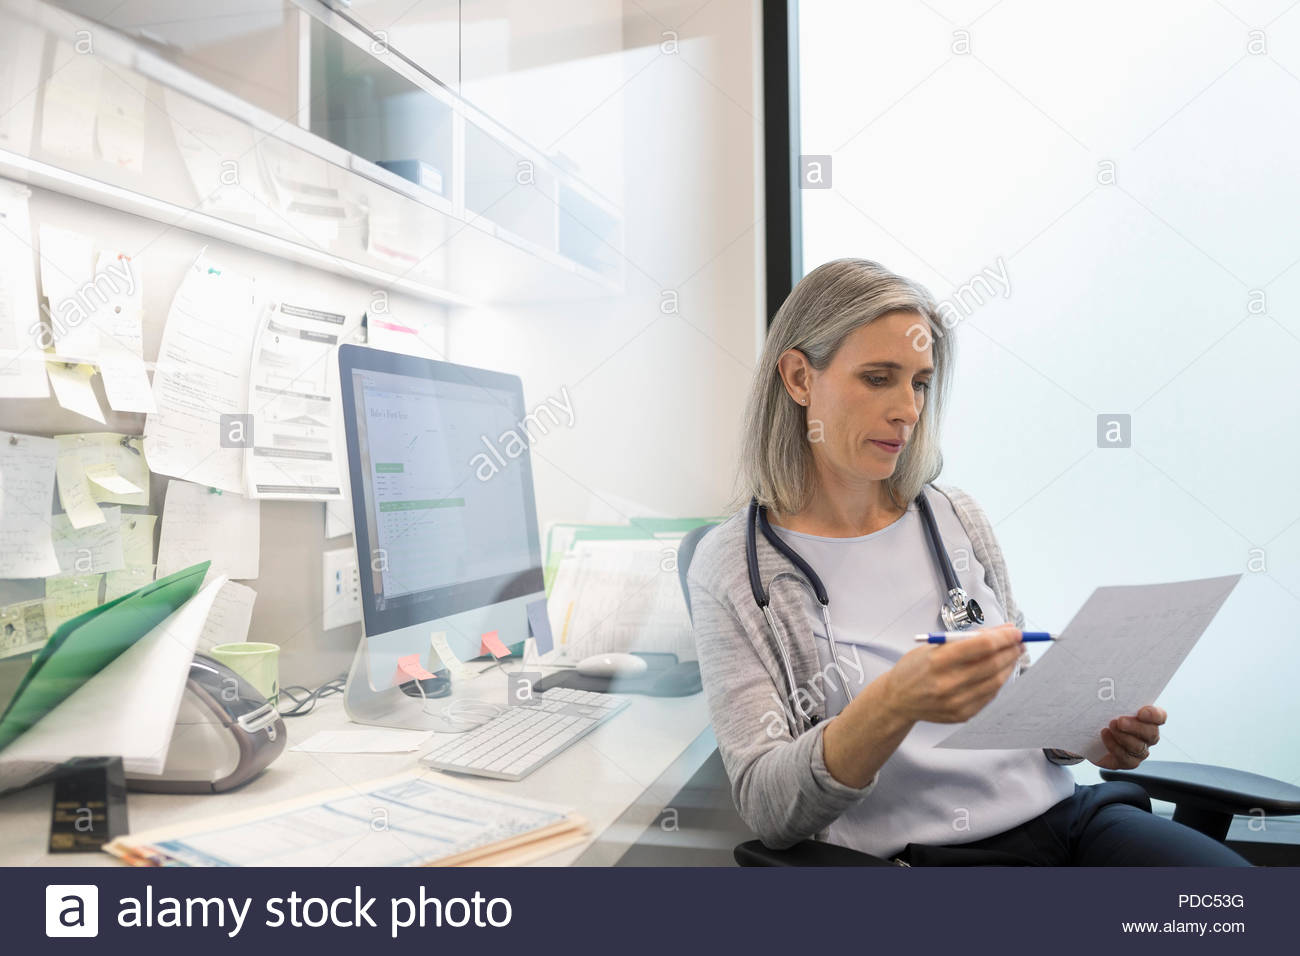 Female doctor reviewing paperwork in clinic office - Stock Image